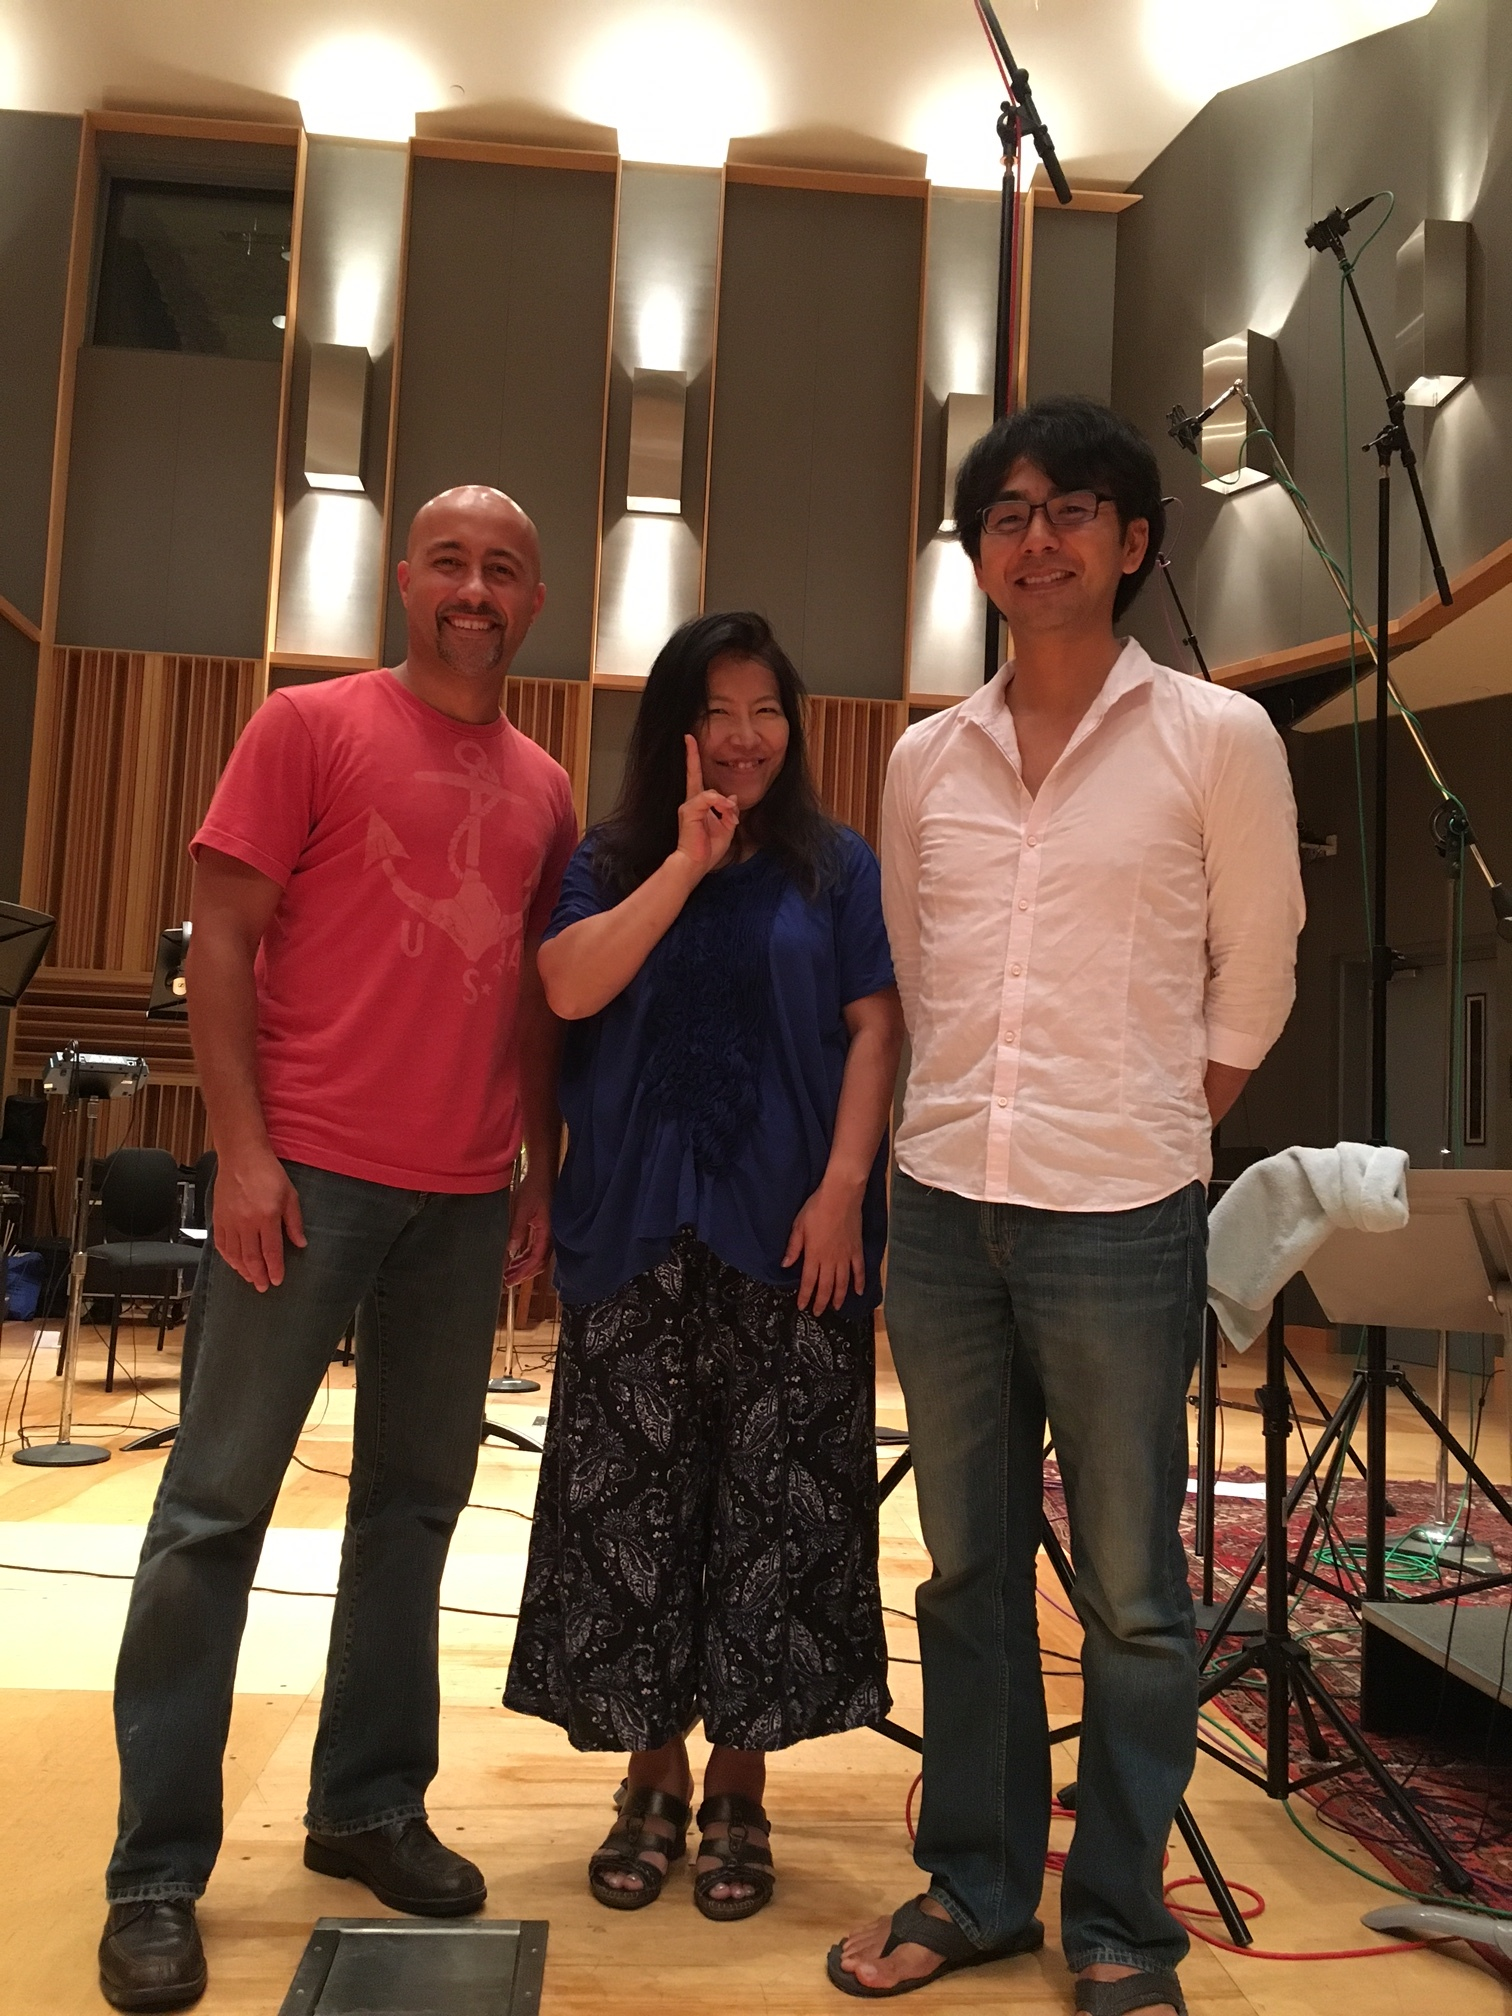 From left to right: José with composer Yoko Shimomura (Kingdom Hearts, Final Fantasy XV), and Shota Nakama (SoundtRec Boston, VGO).